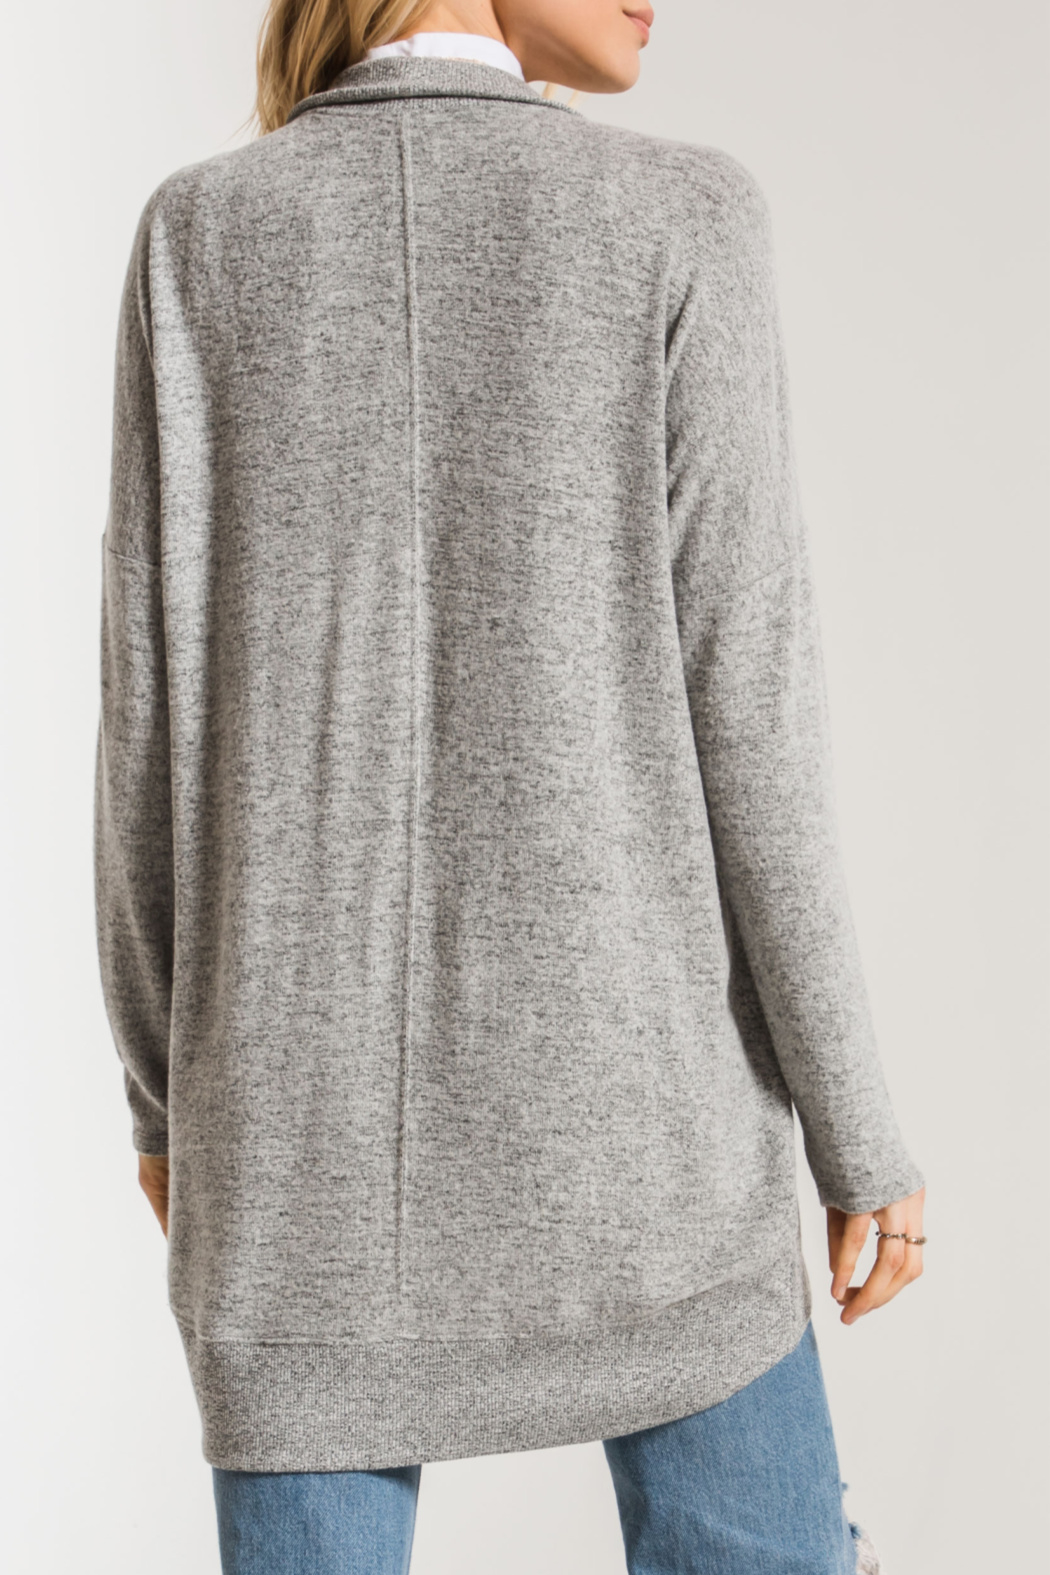 z supply Marled Knit Cocoon Sweater - Side Cropped Image